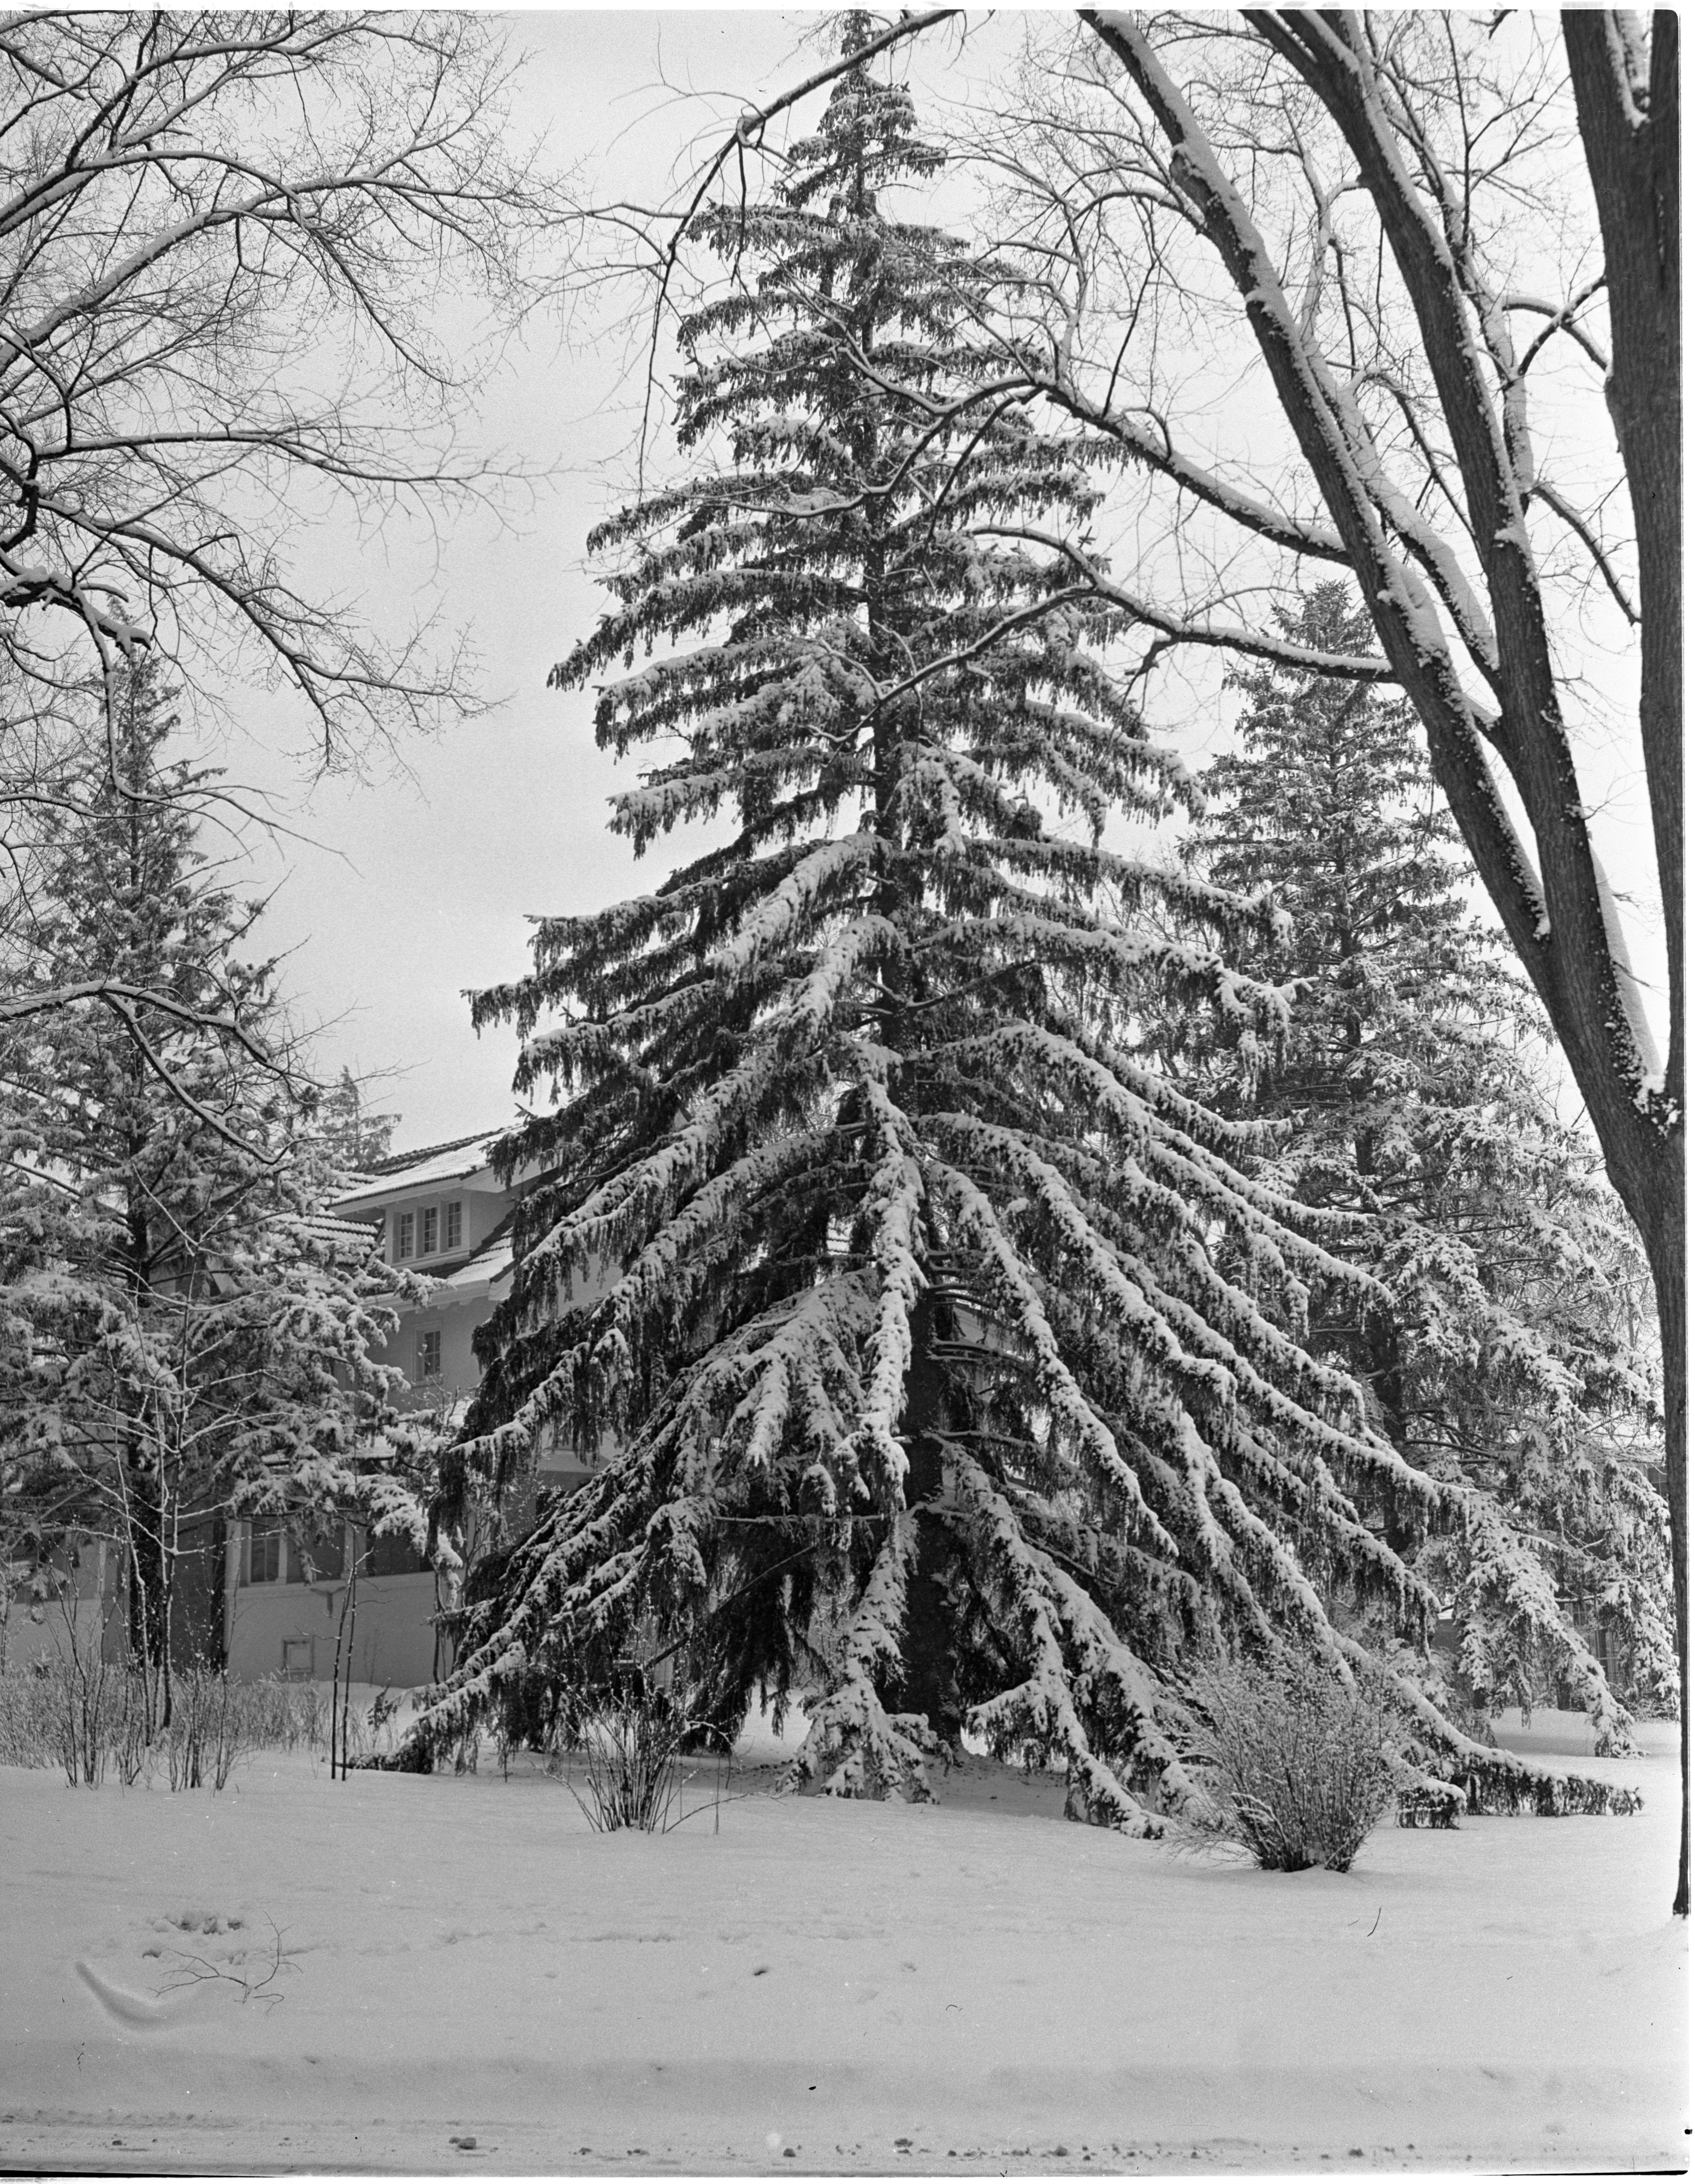 Snow Blankets The Trees At 1746 Washtenaw Ave, February 1940 image